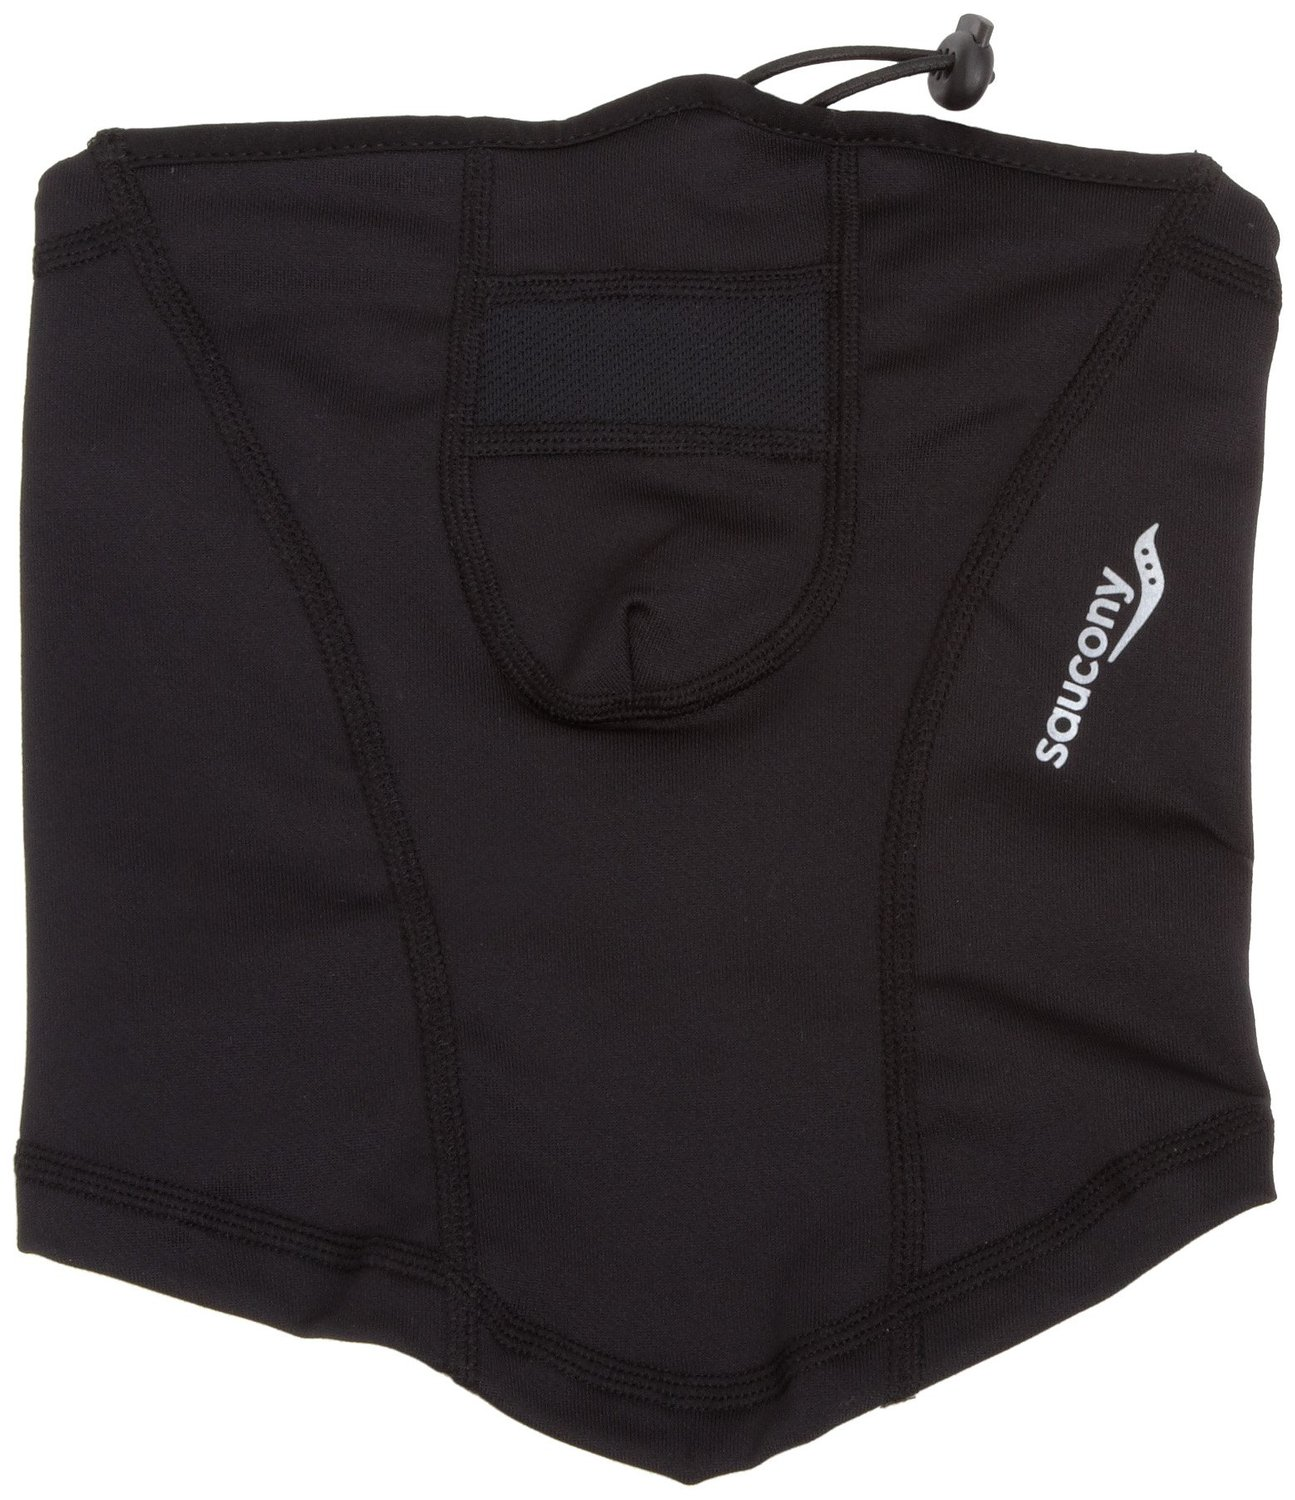 090e2977 Cheap Saucony Drylete, find Saucony Drylete deals on line at Alibaba.com